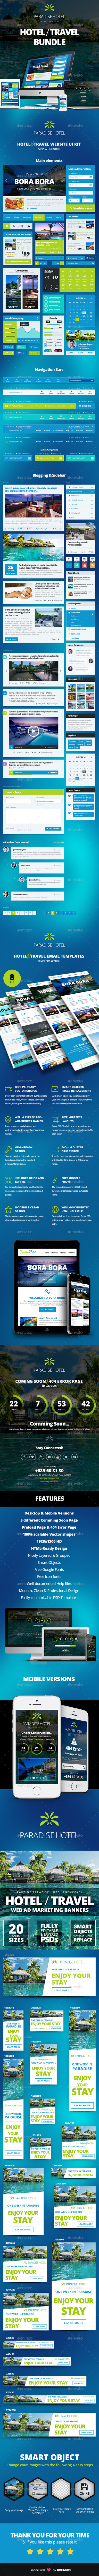 Paradise Hotel Bundle: UI Kit, Emails, Banners - User Interfaces Web Elements